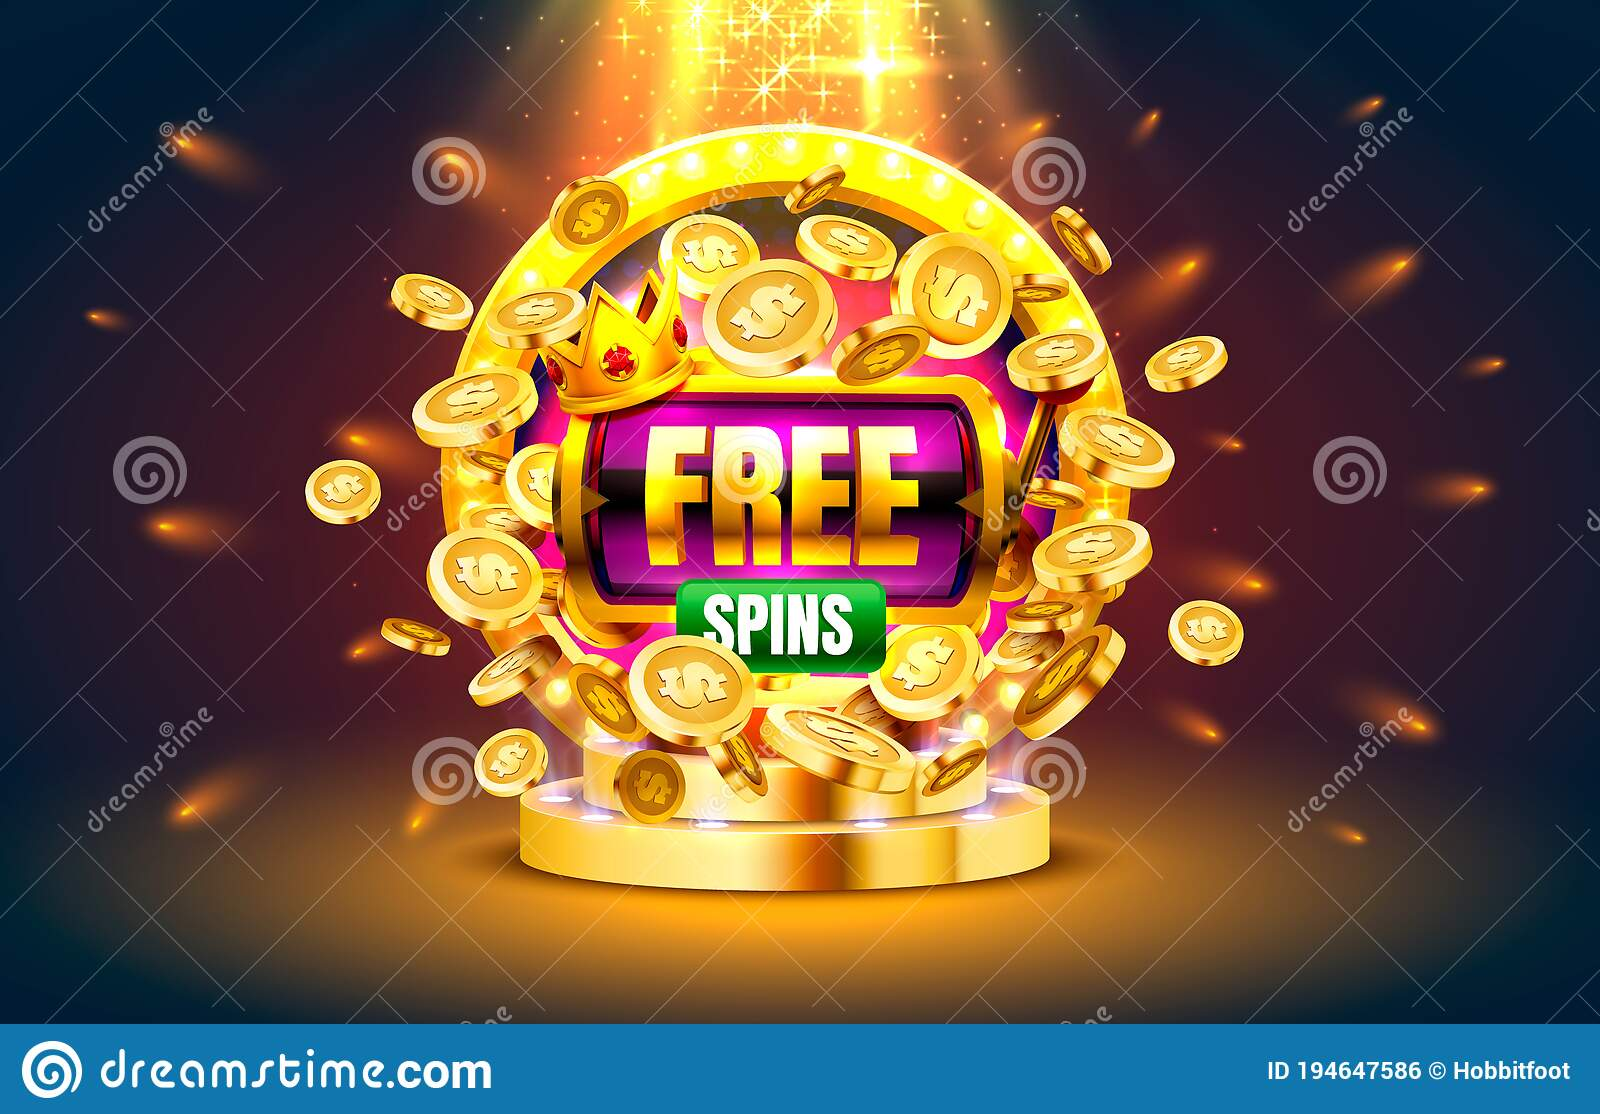 Free spins 24591